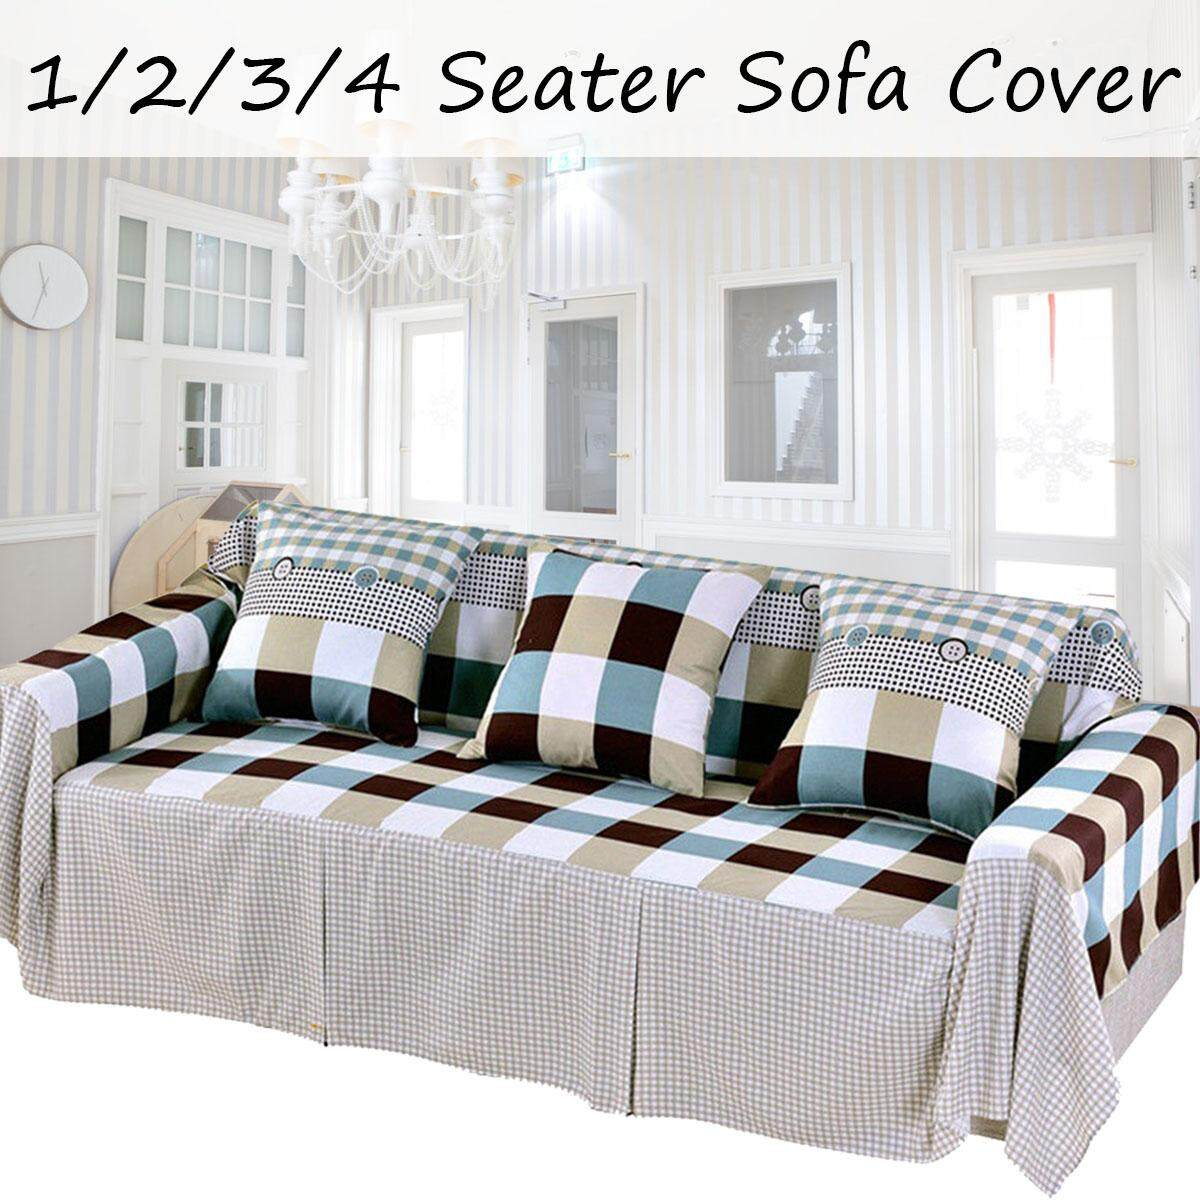 2 Seater Cotton Blend Slipcover Sofa Cover Protector Chair Couch Covers